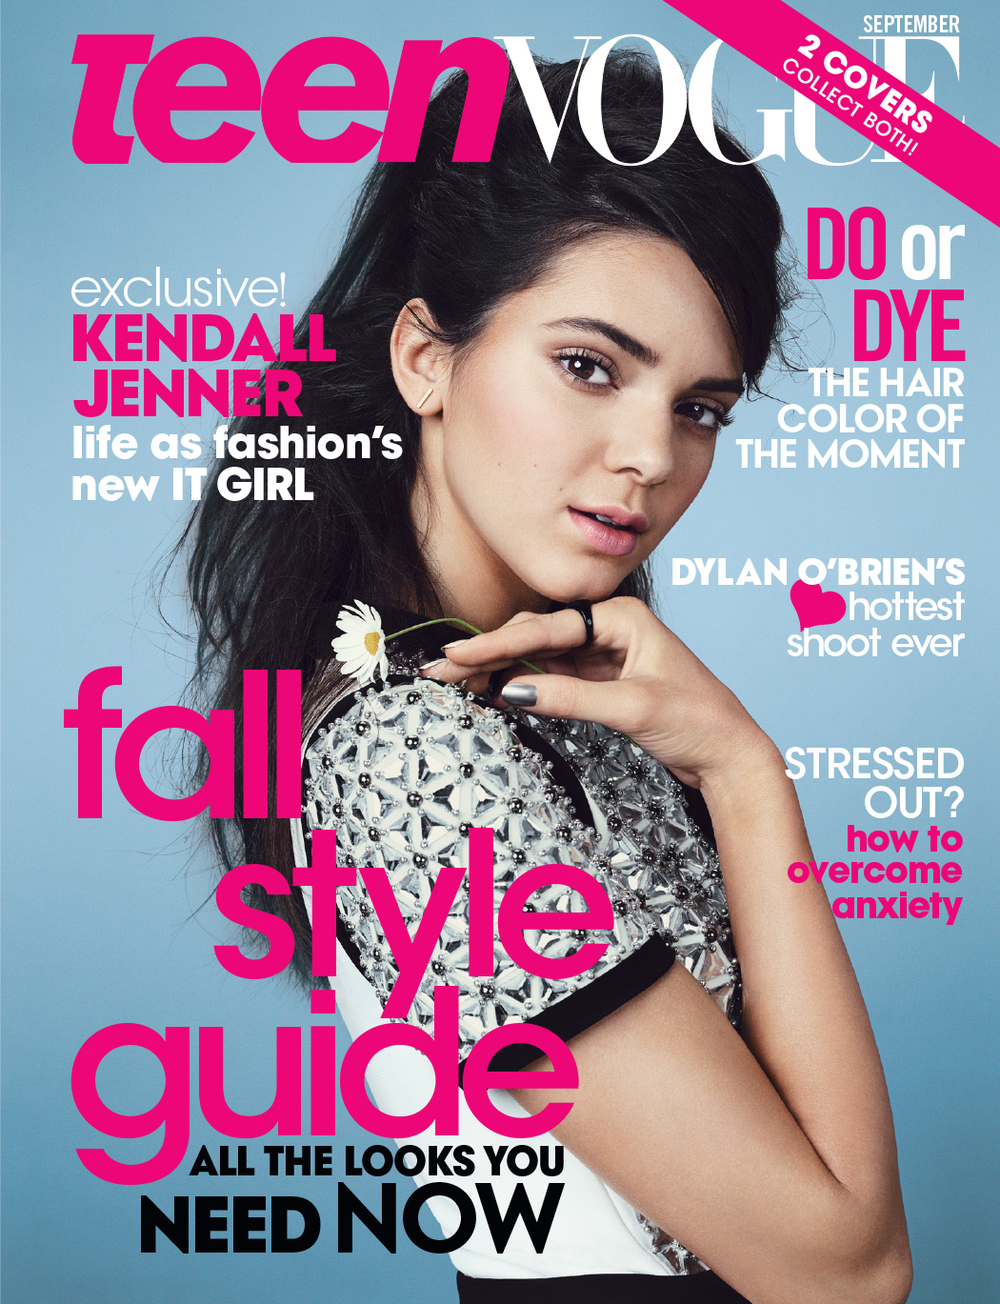 sept.cover.kendall-1.jpg